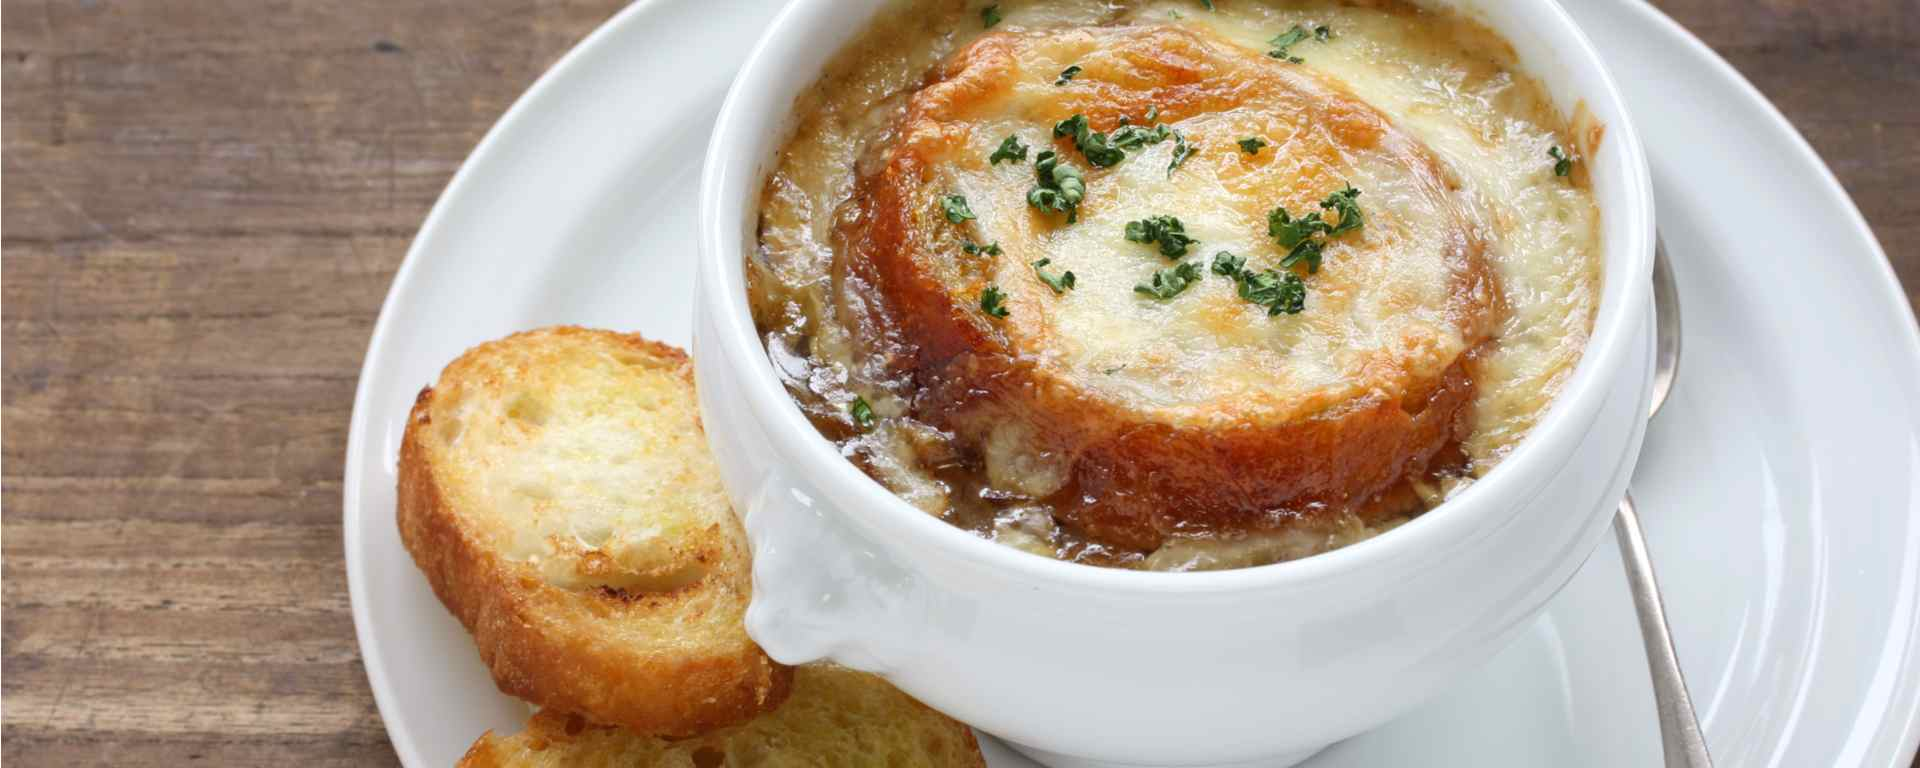 Photo for - French Onion Soup with Croutons au Gratin